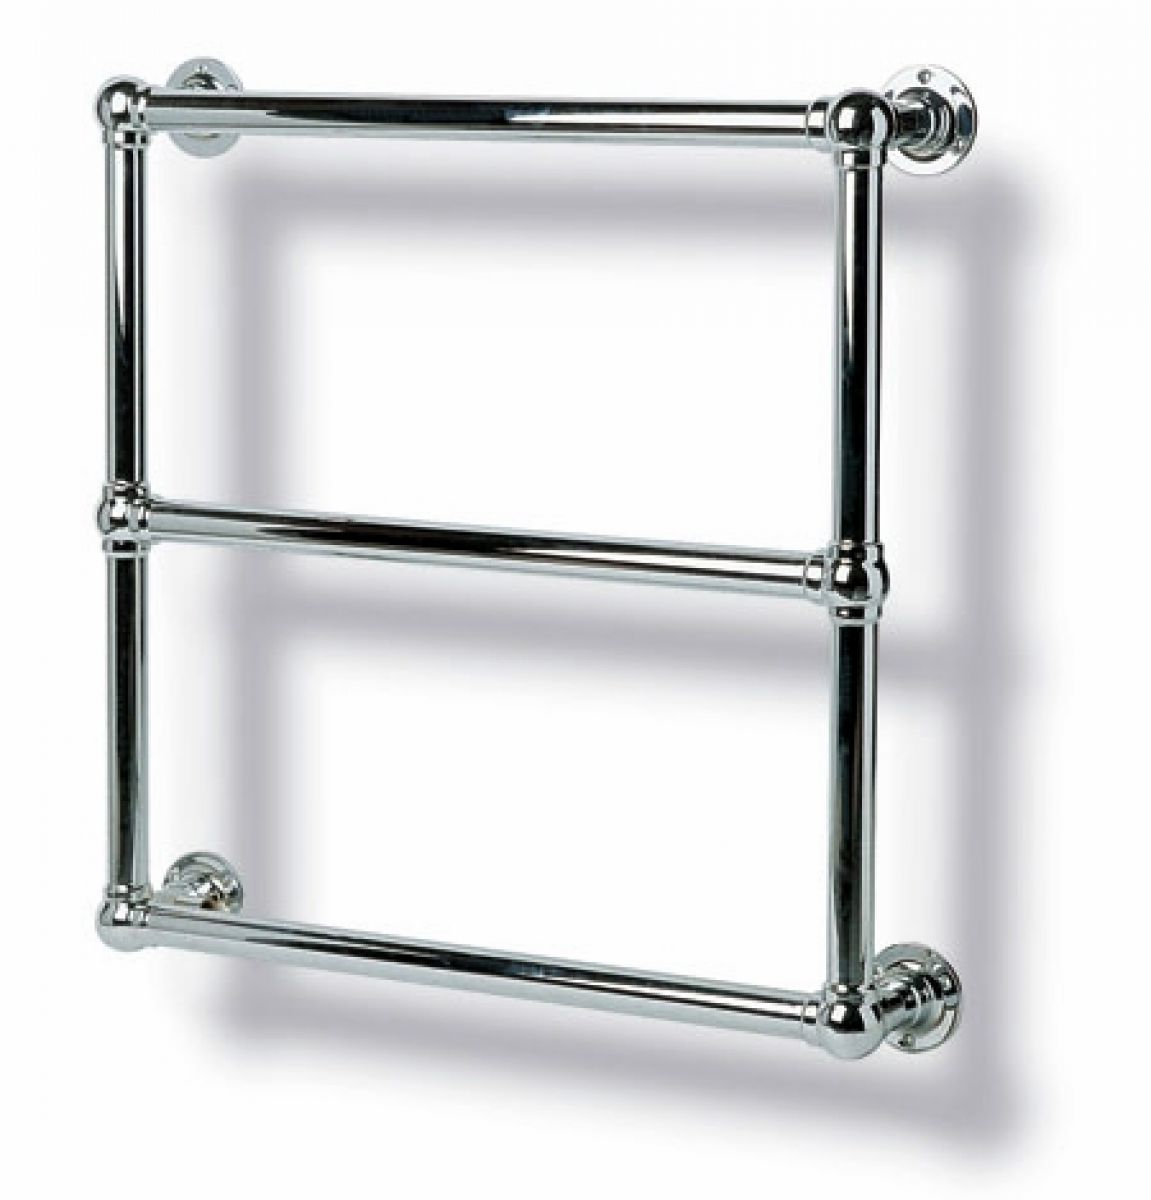 wall mounted towel rack wall mounted towel rack with soap  - apollo ravenna p traditional towel rail